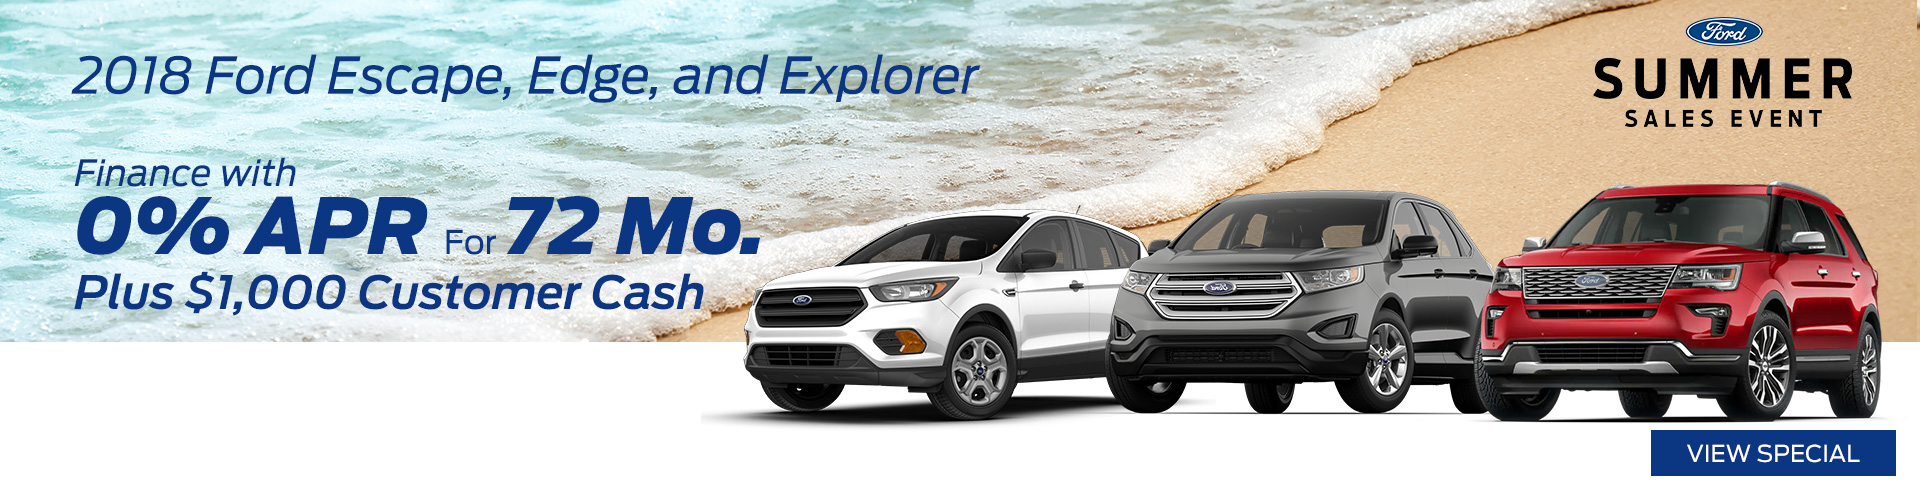 August 2018 Ford Summer Sales Event Special